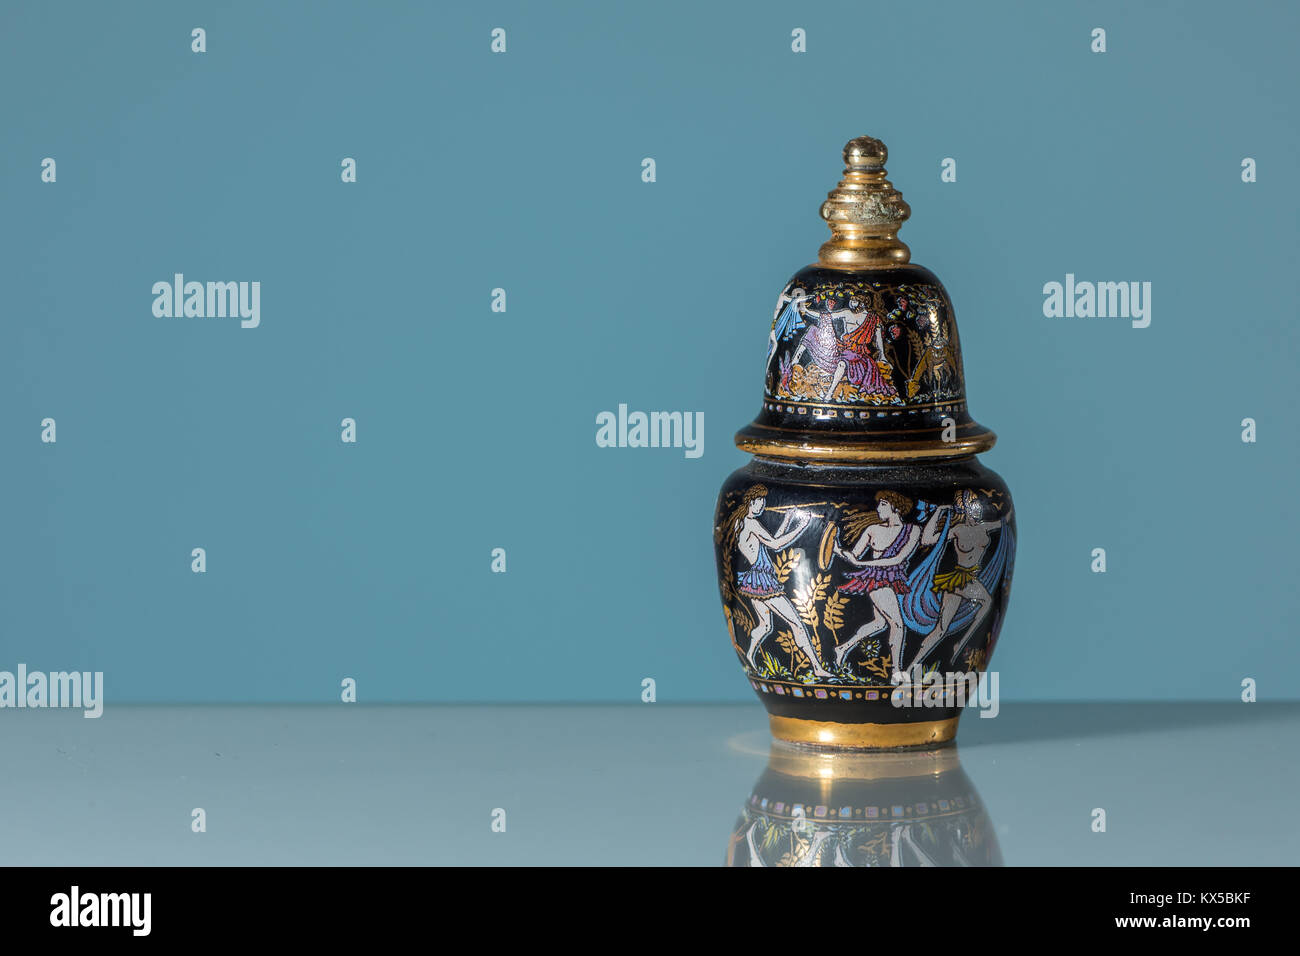 Closeup of an Old black golden perfume flask with paintings - Stock Image